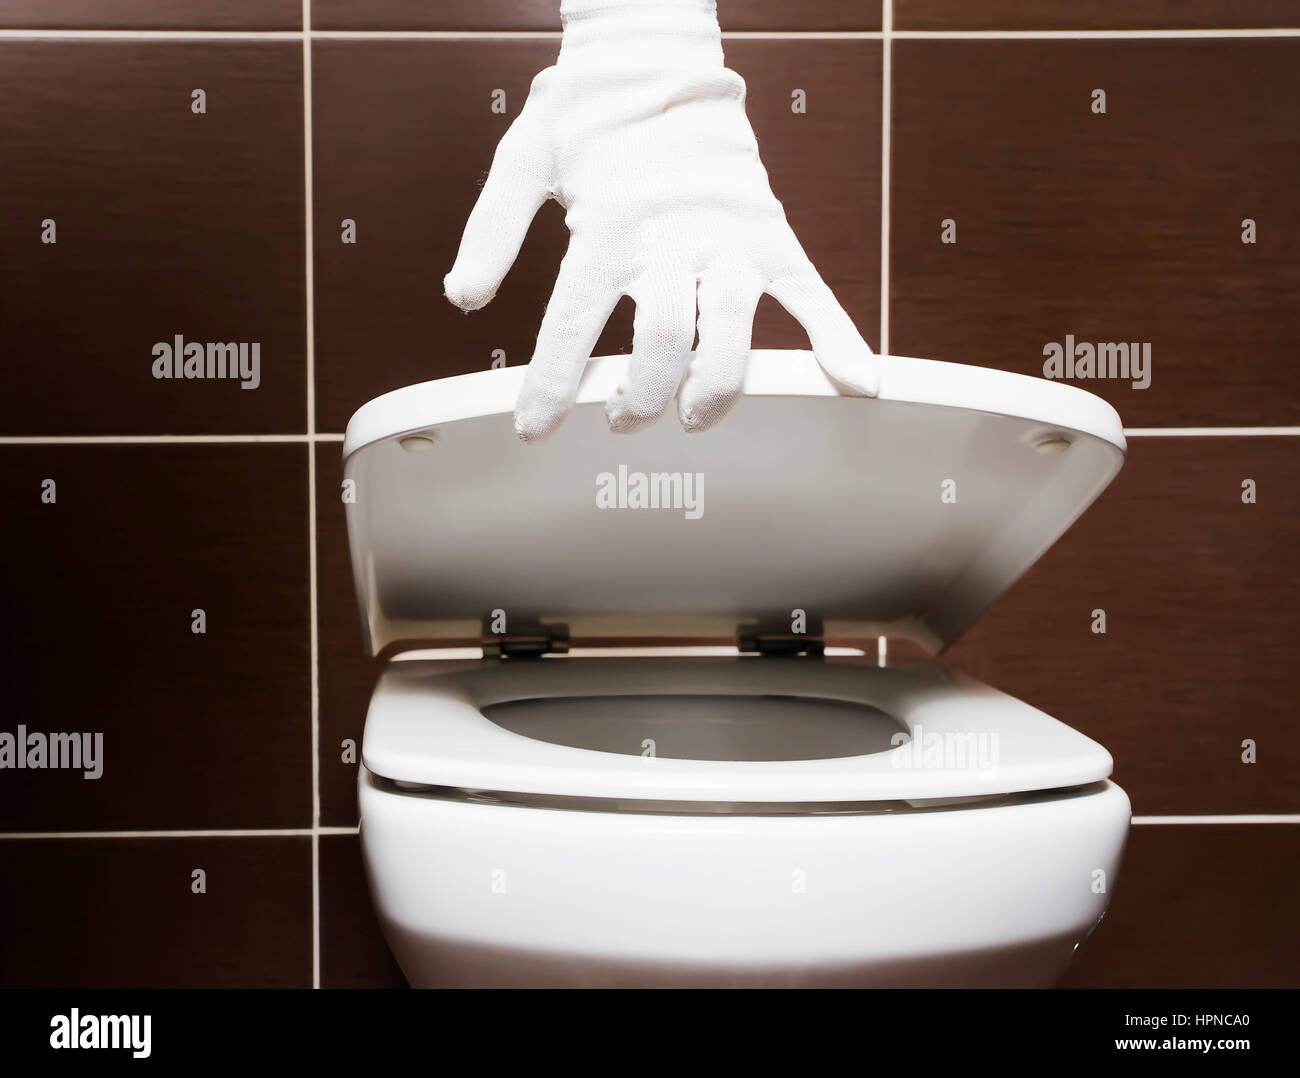 white clean toilet with open seat cover after repairs stock photo royalty free image 134465688. Black Bedroom Furniture Sets. Home Design Ideas